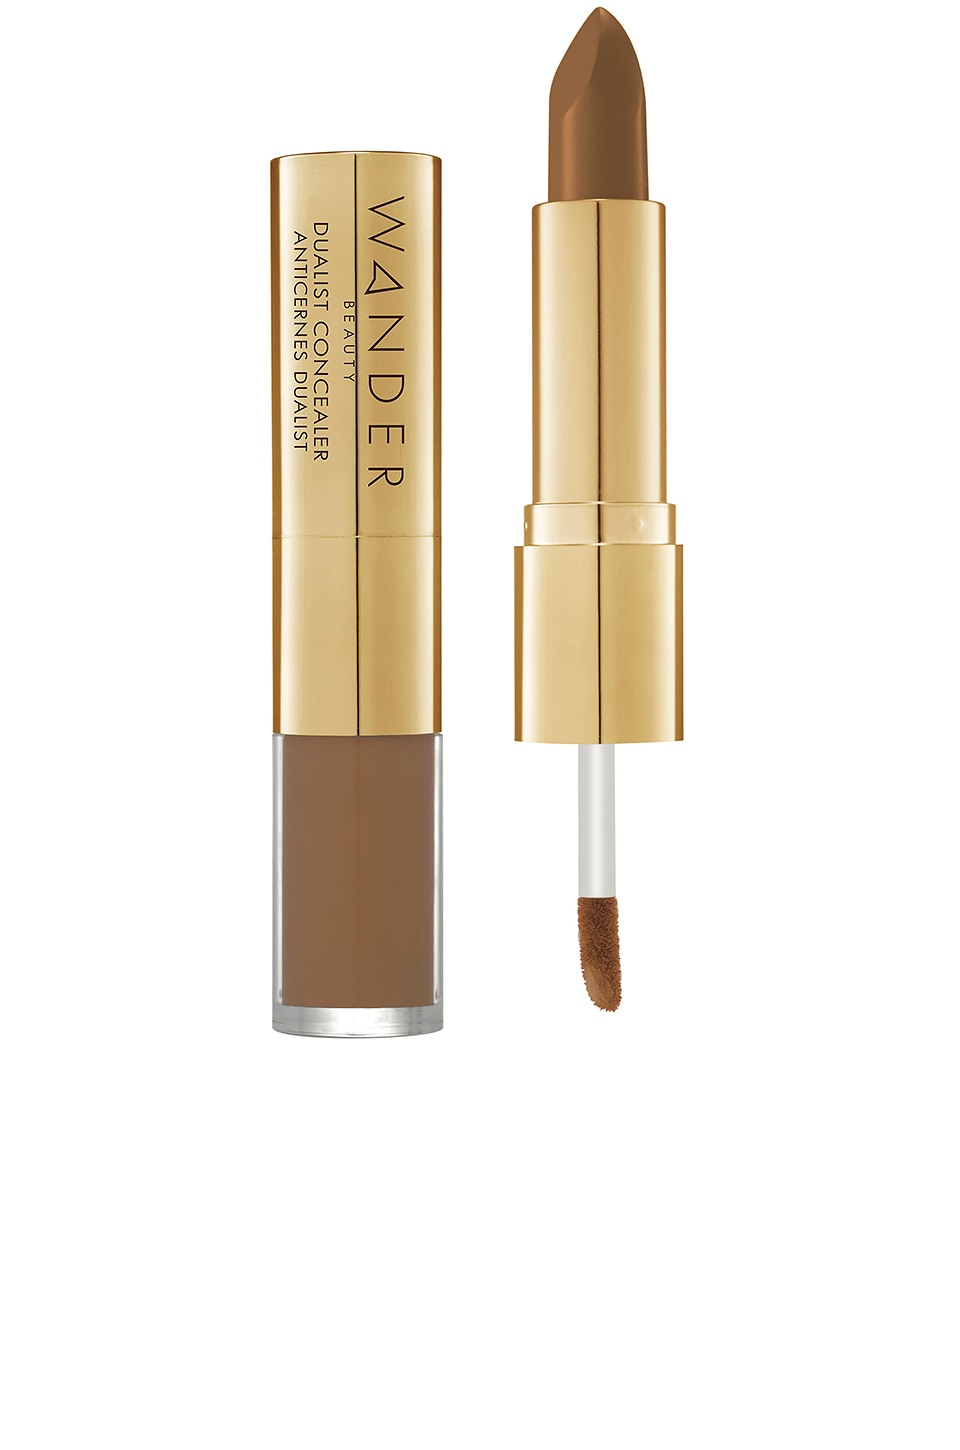 Wander Beauty Dualist Matte and Illuminating Concealer in Deep